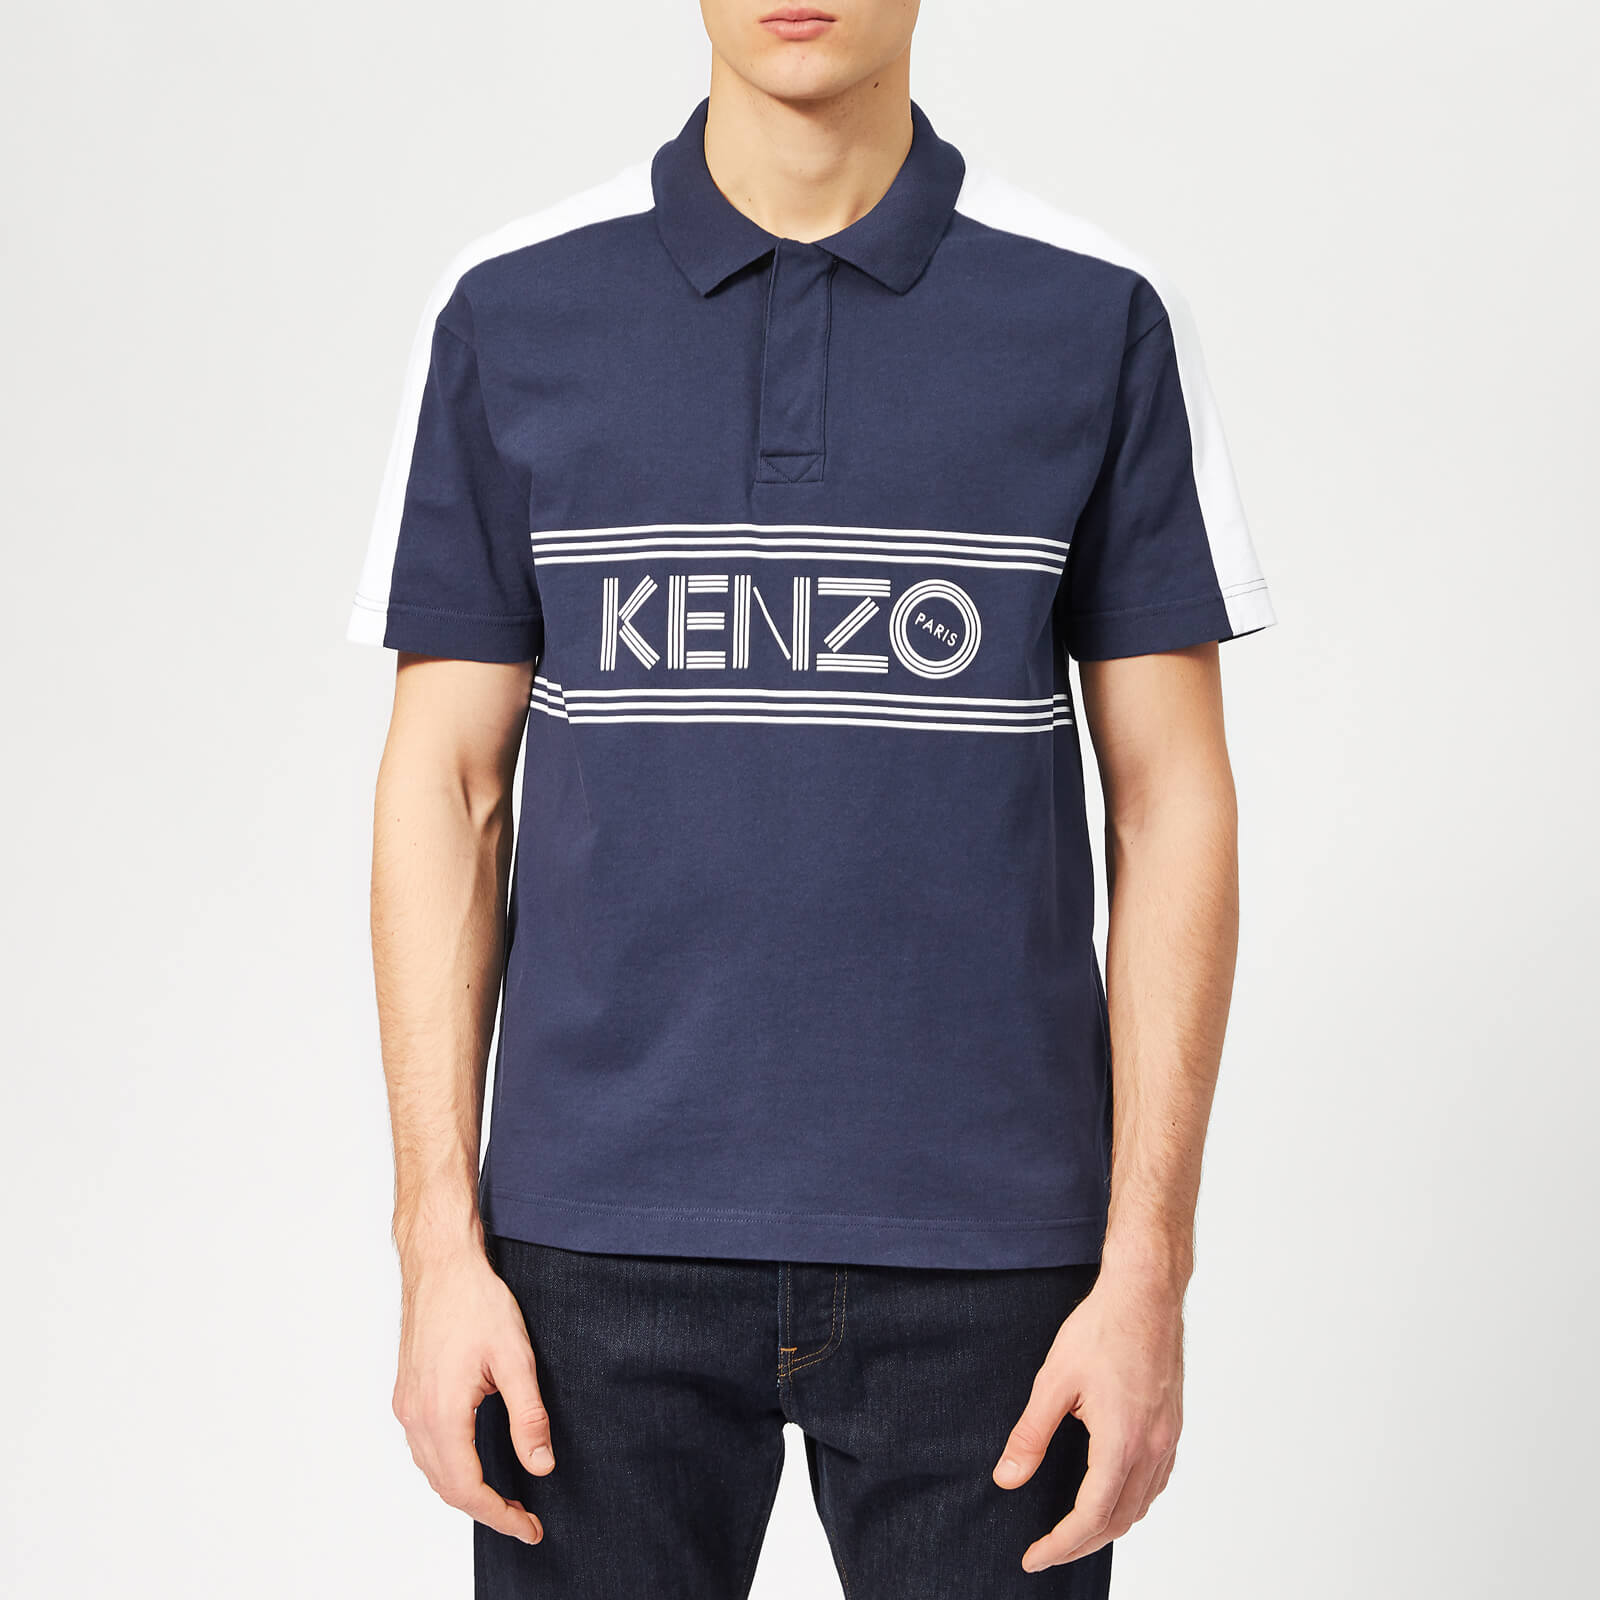 d19b80a8 KENZO Men's Chest Logo Polo Shirt - Ink - Free UK Delivery over £50